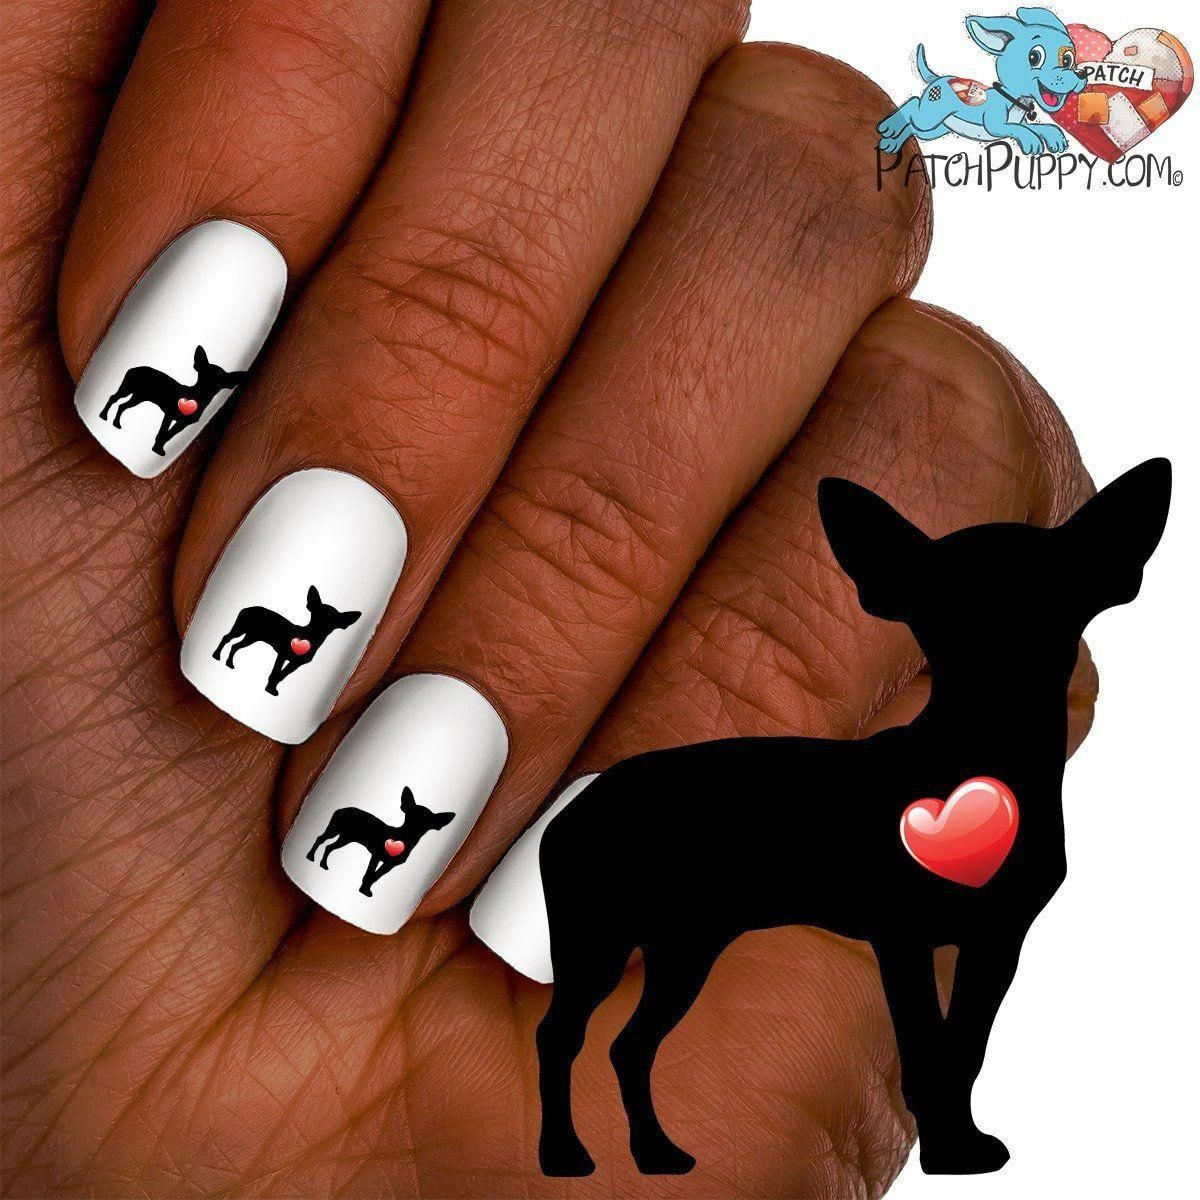 My Heart Chihuahua Nail Art Decals Now 50 More Free Chihuahua Nail Art Ballerina Nails Ballerina Nails Designs